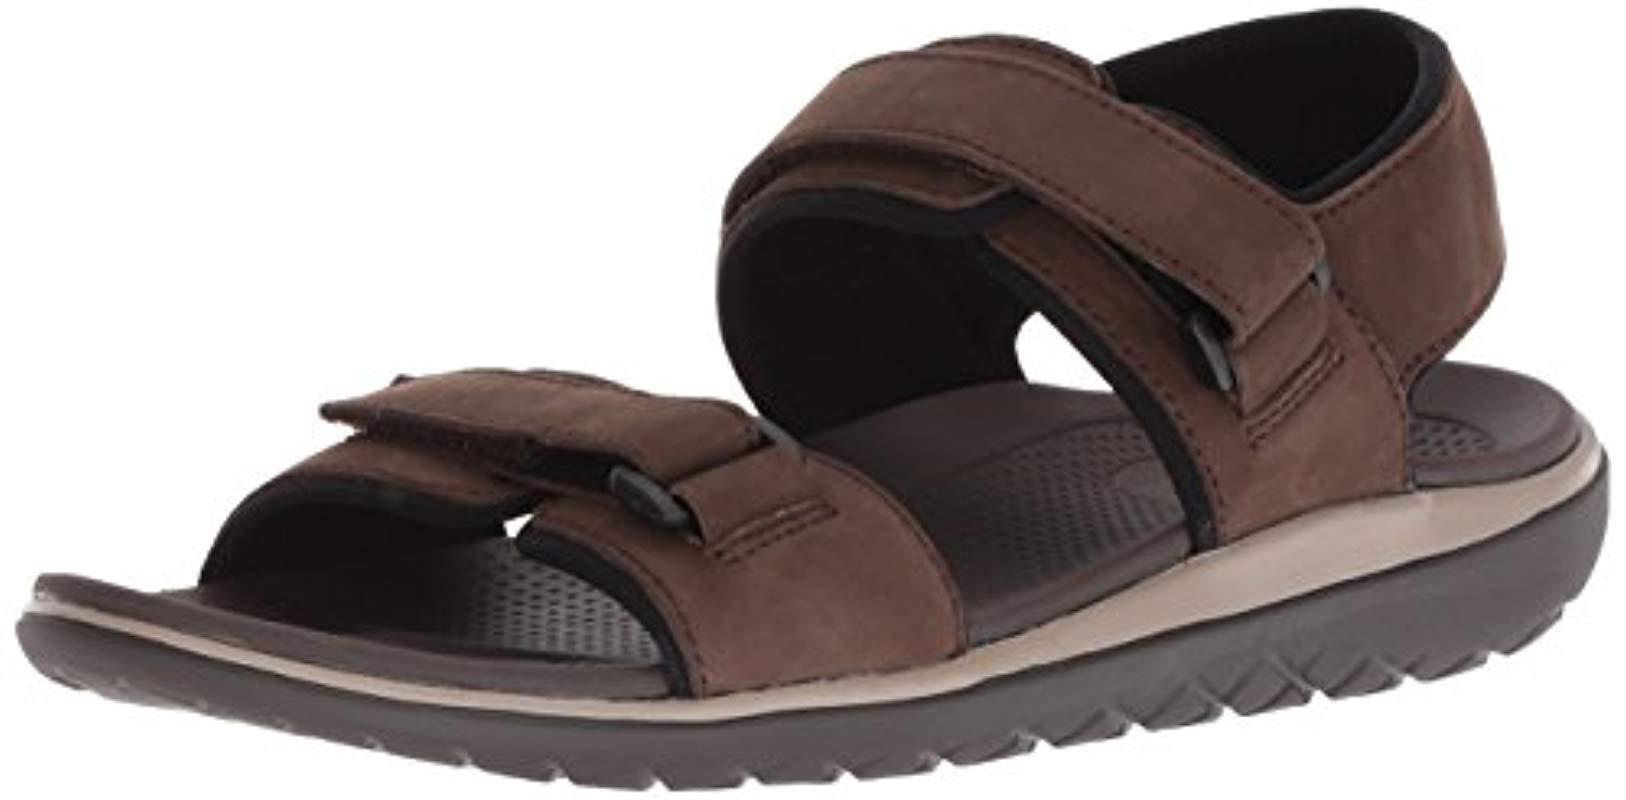 21c89e414969 Lyst - 206 Collective Greenlake Double Band Velcro Sandal in Brown ...